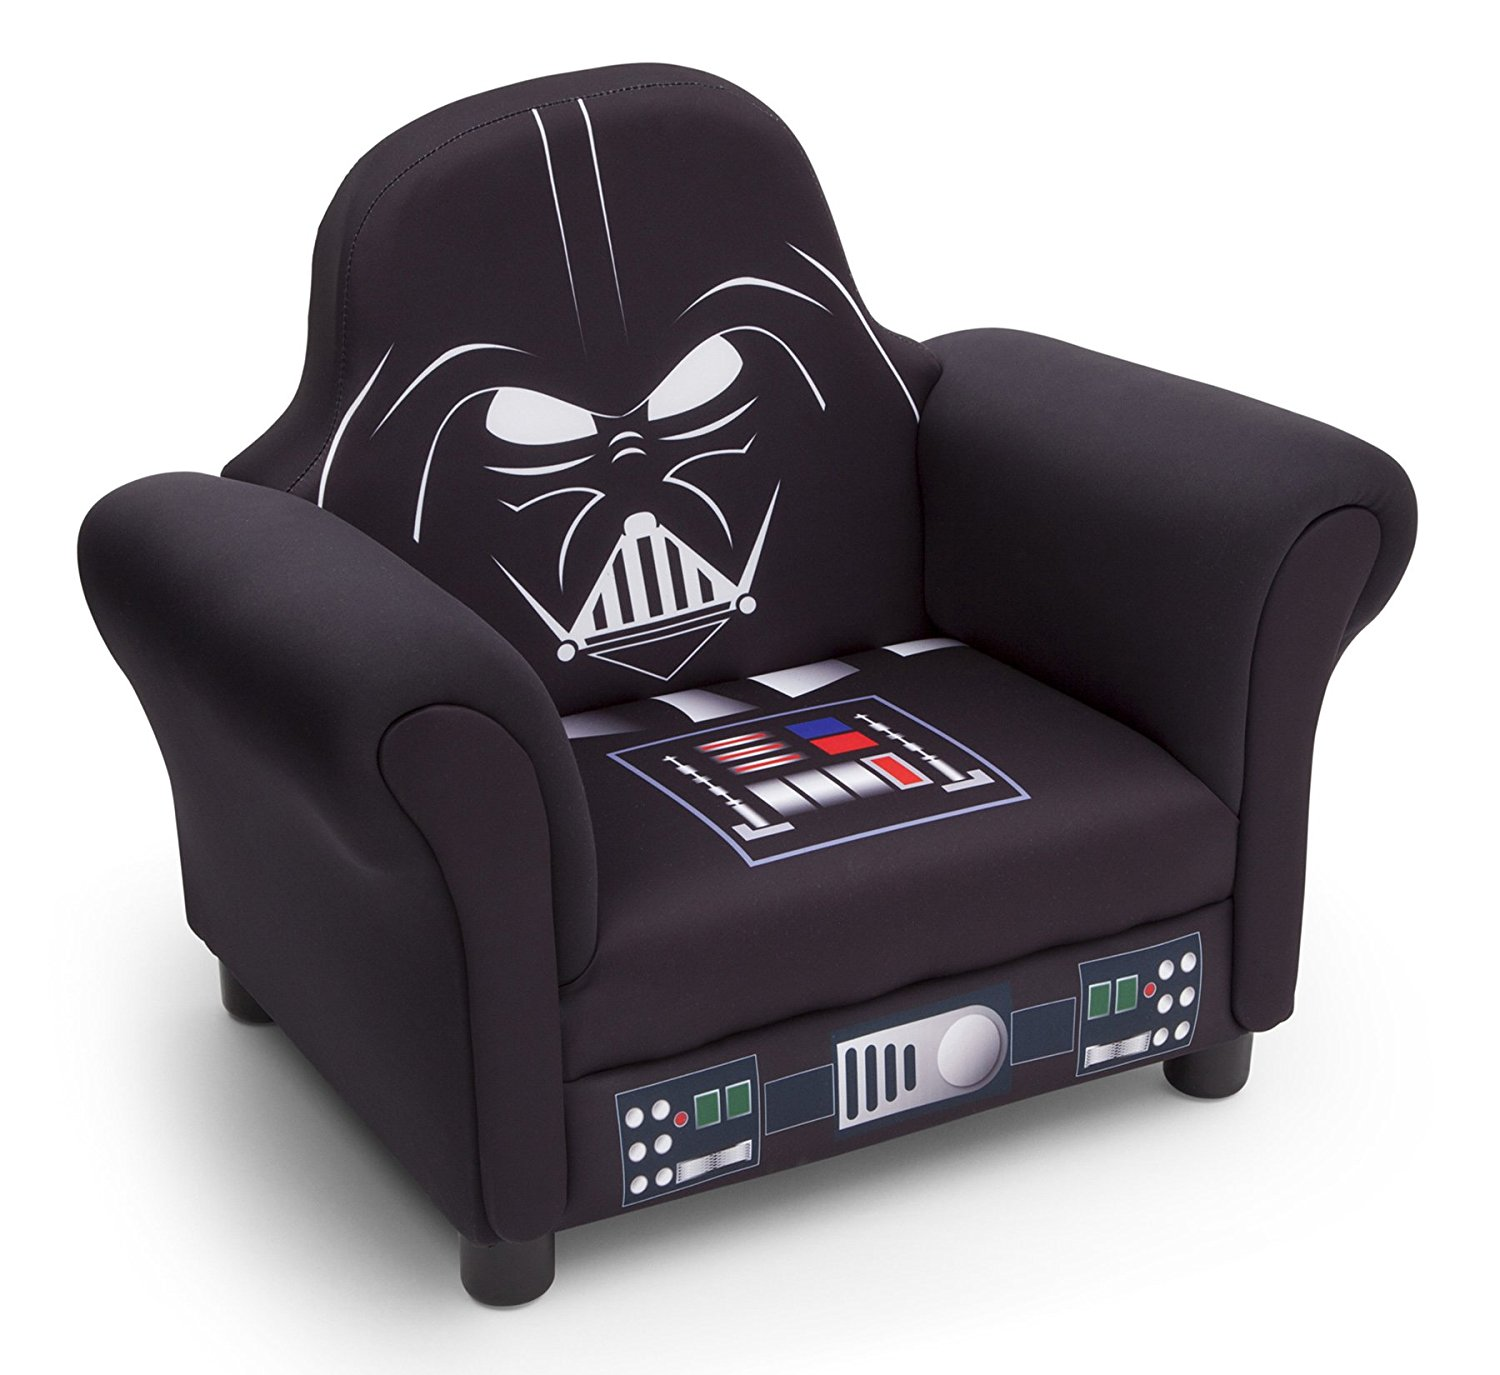 Upholstered Children's Chairs Delta Children Star Wars Deluxe Upholstered Chair Darth Vader